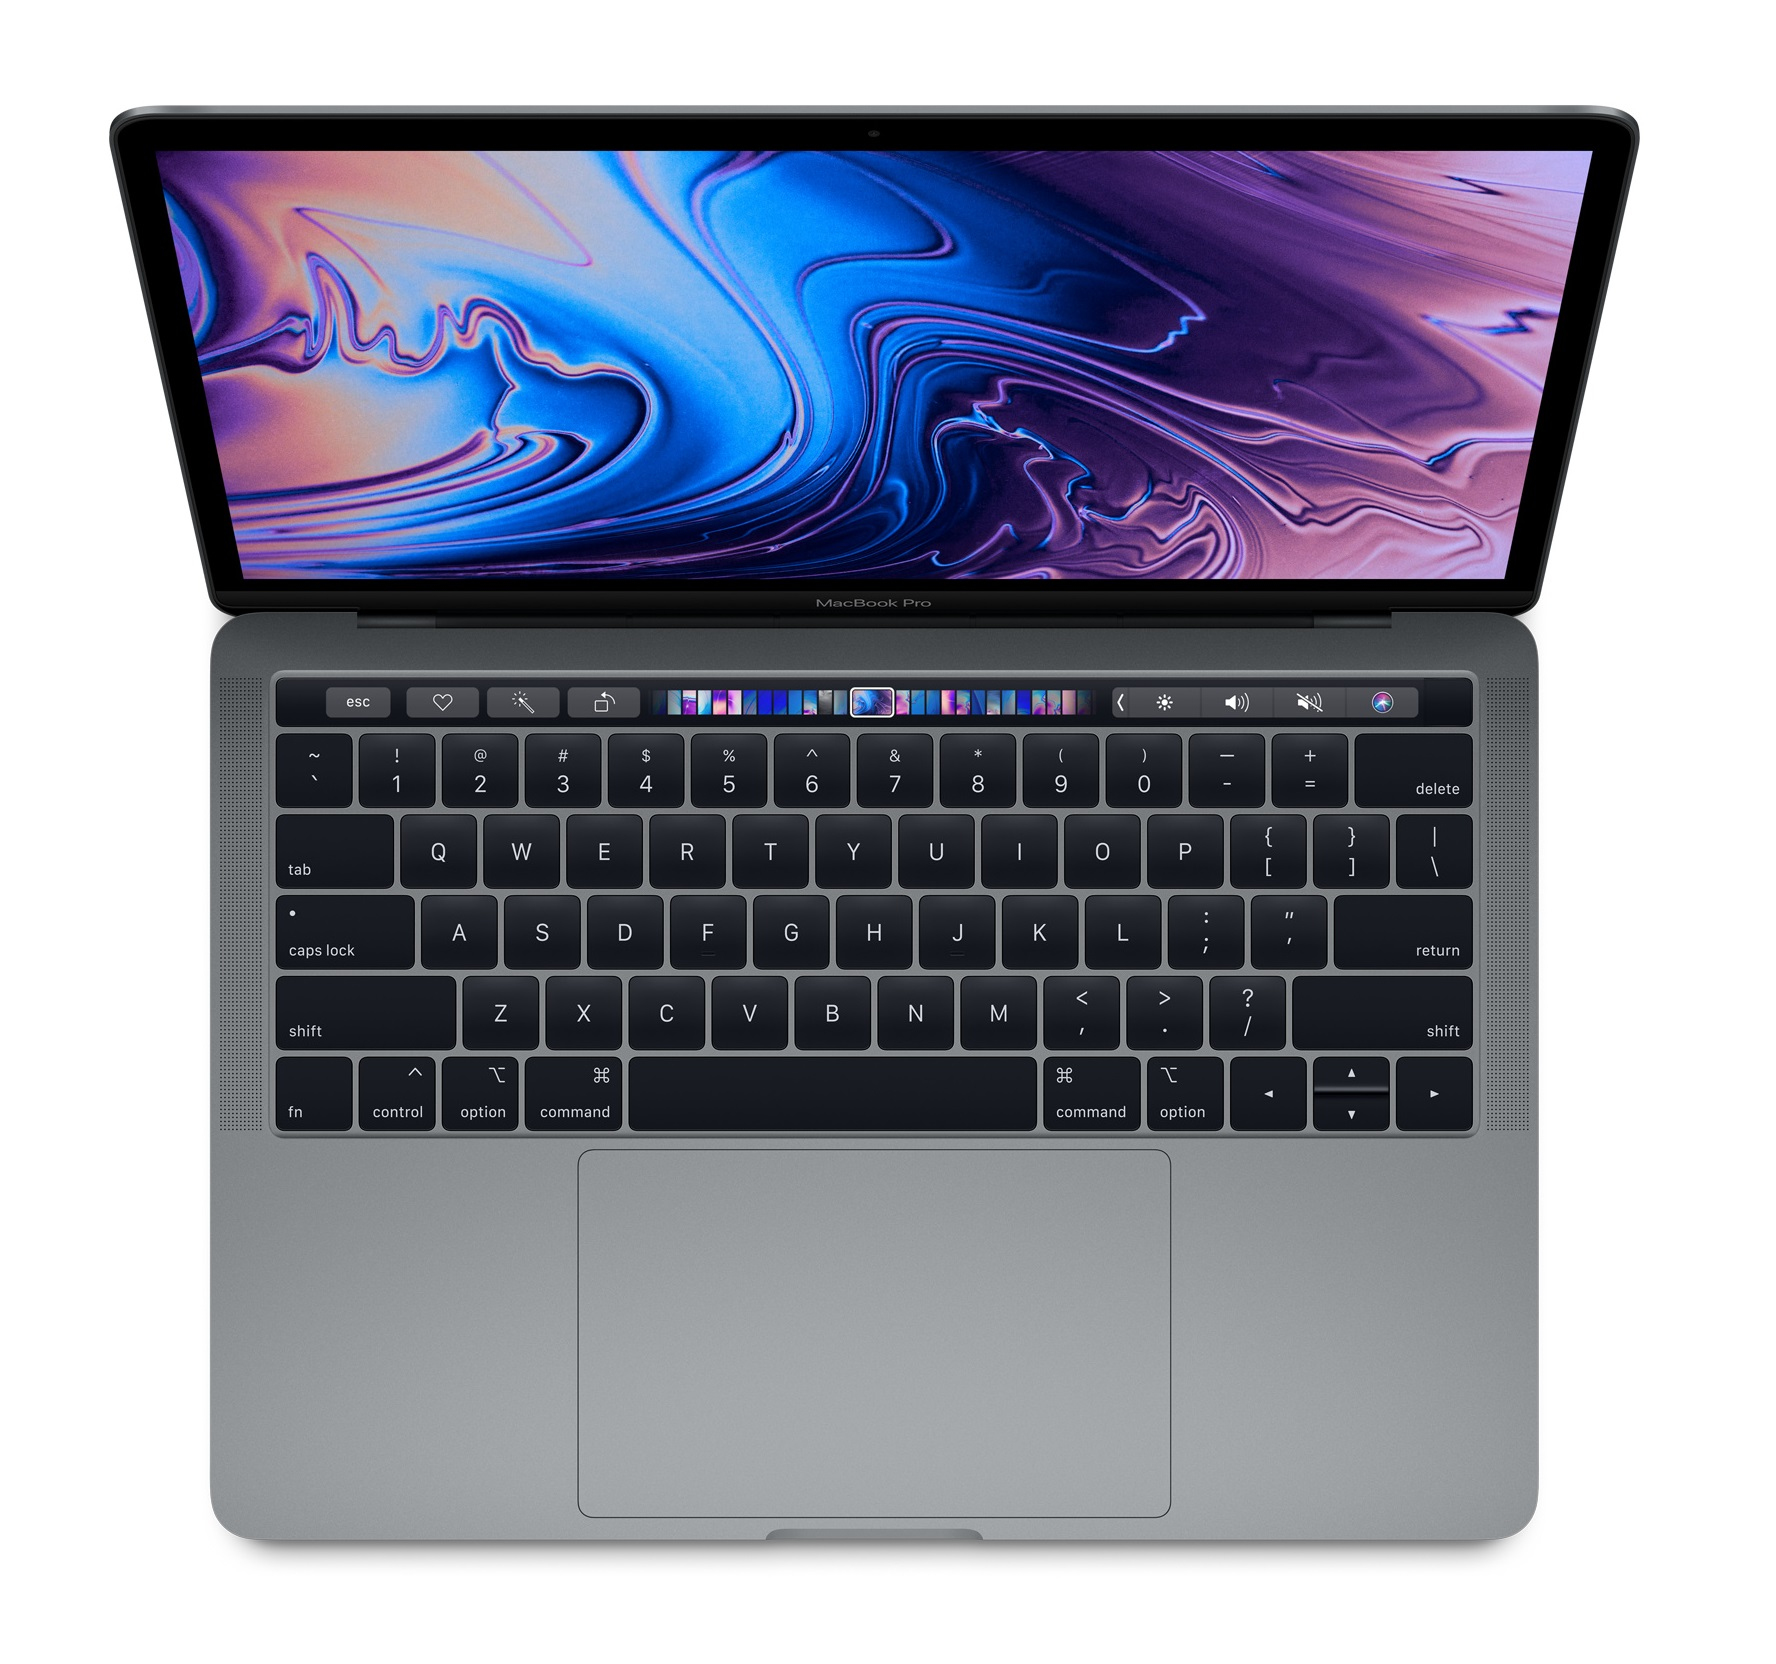 MacBook Pro - 13in - i5 2.3GHz - 8GB Ram - 256GB SSD - Touch Bar And Touch Id - Intel Iris Plus Graphics 655 - Space Gray - Qwerty Uk